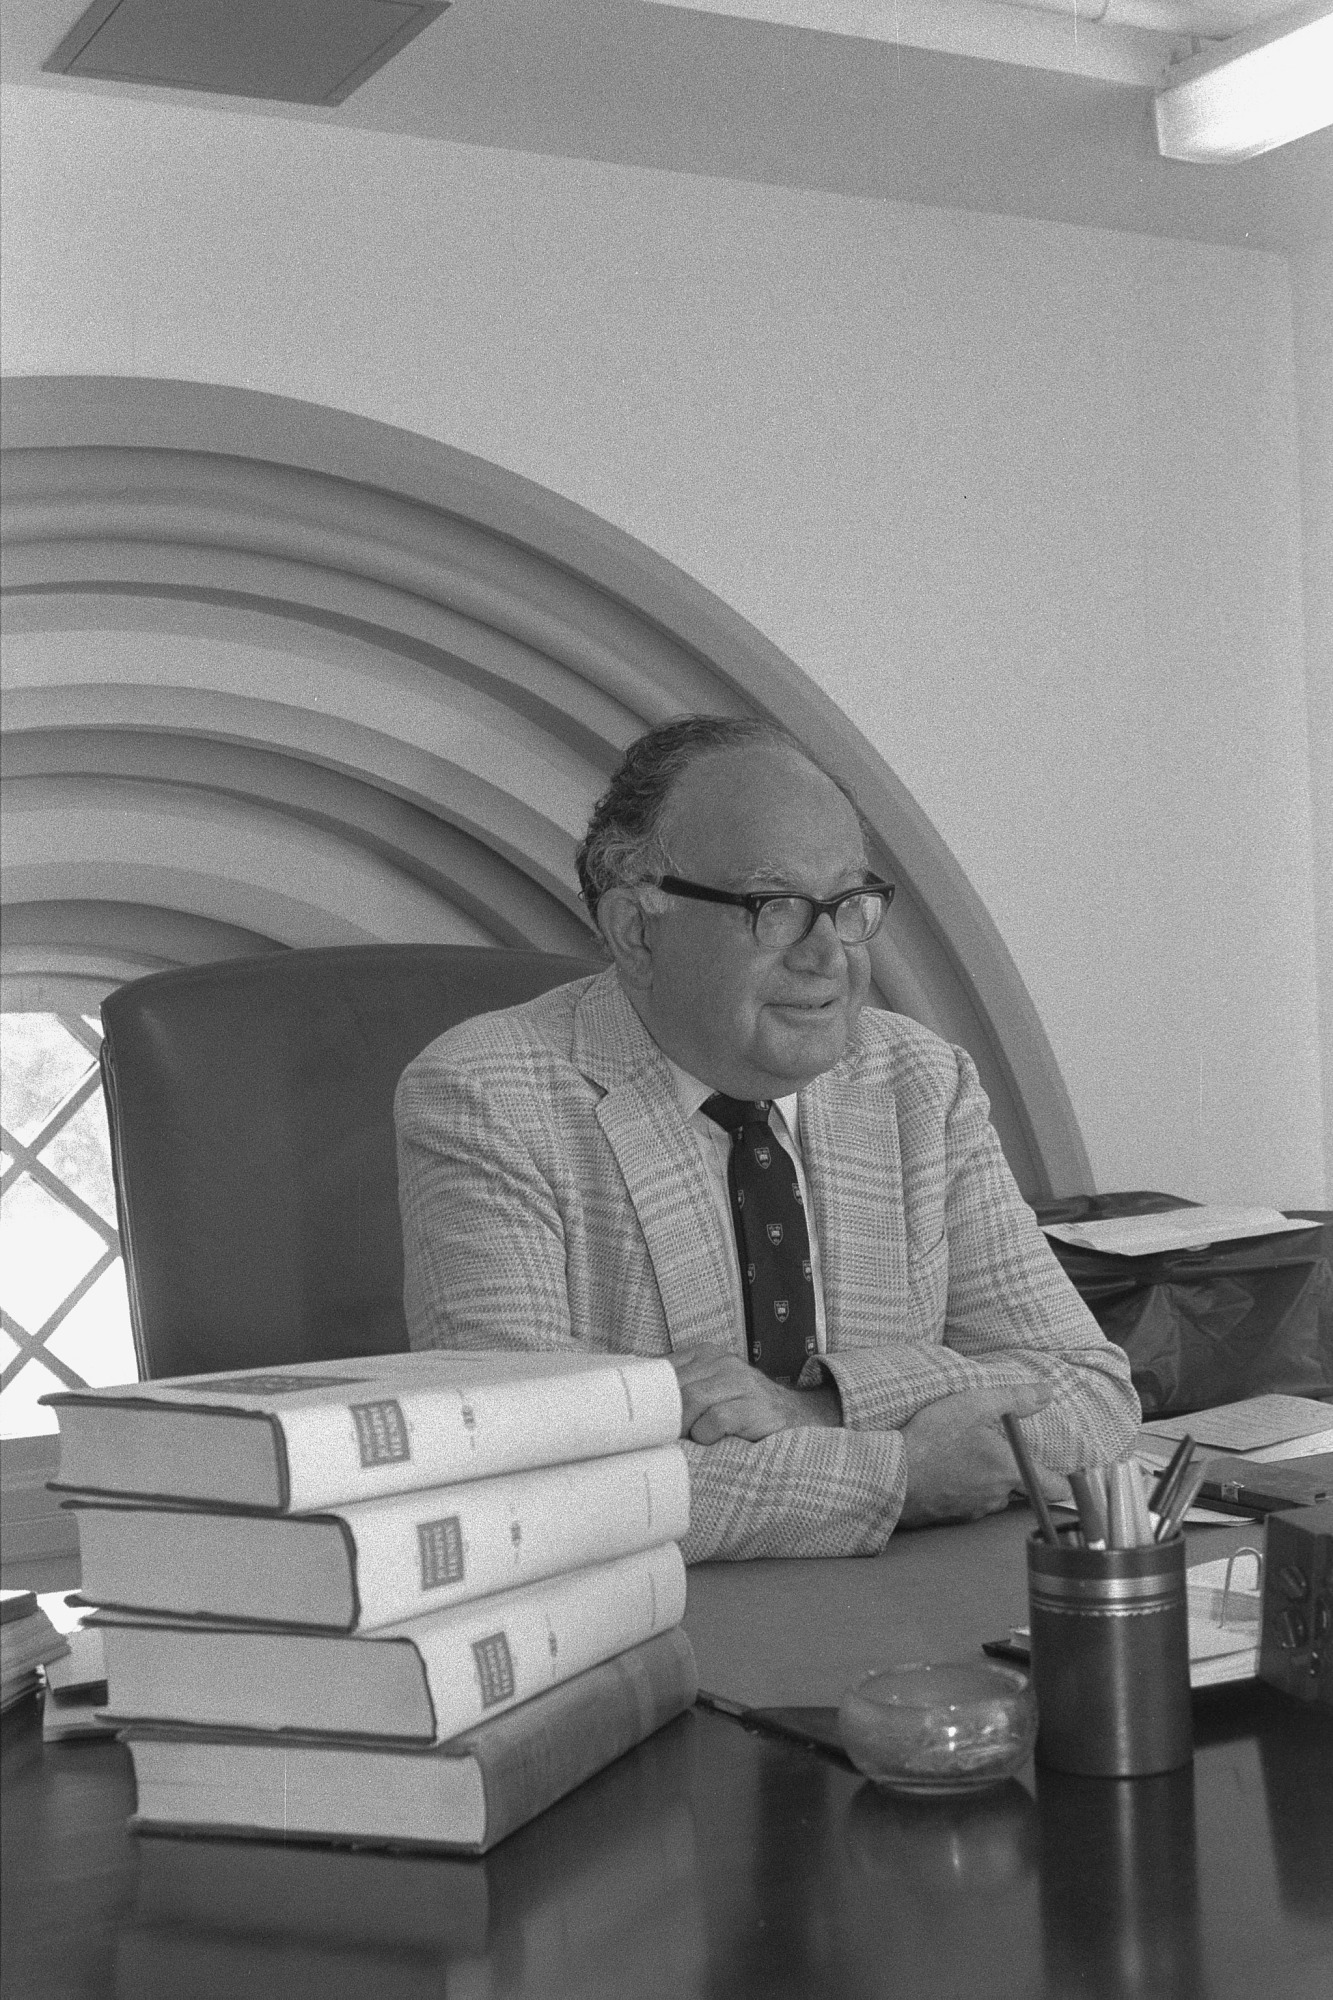 Nathan Reingold, Editor, The Joseph Henry Papers Project, at his desk in the Smithsonian Institution Building, 1984, by Jeff Tinsley. Smithsonian Institution Archives, negative number 85-13061-21A.